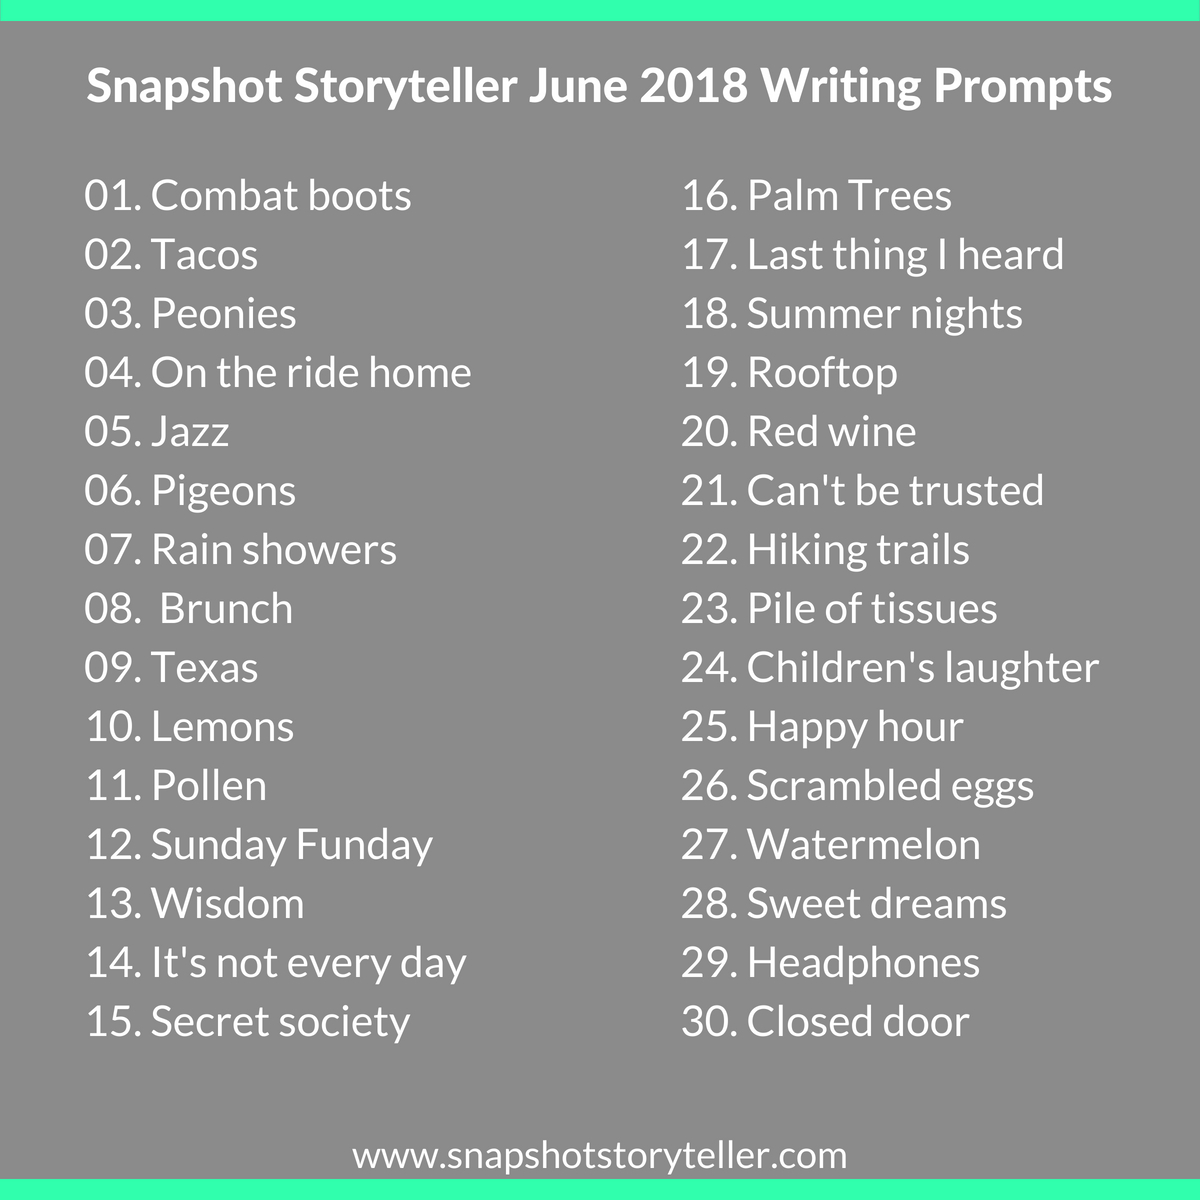 Snapshot Storyteller: June 2018 Writing Prompts -- Feel free to use these writing prompts to exercise your creativity. Enjoy! | www.snapshotstoryteller.com #amwriting #snapshotstoryteller #creativestoryteller #creative #storyteller #creativewriter #IWrite #WriteOn #writingprompt #writingprompts